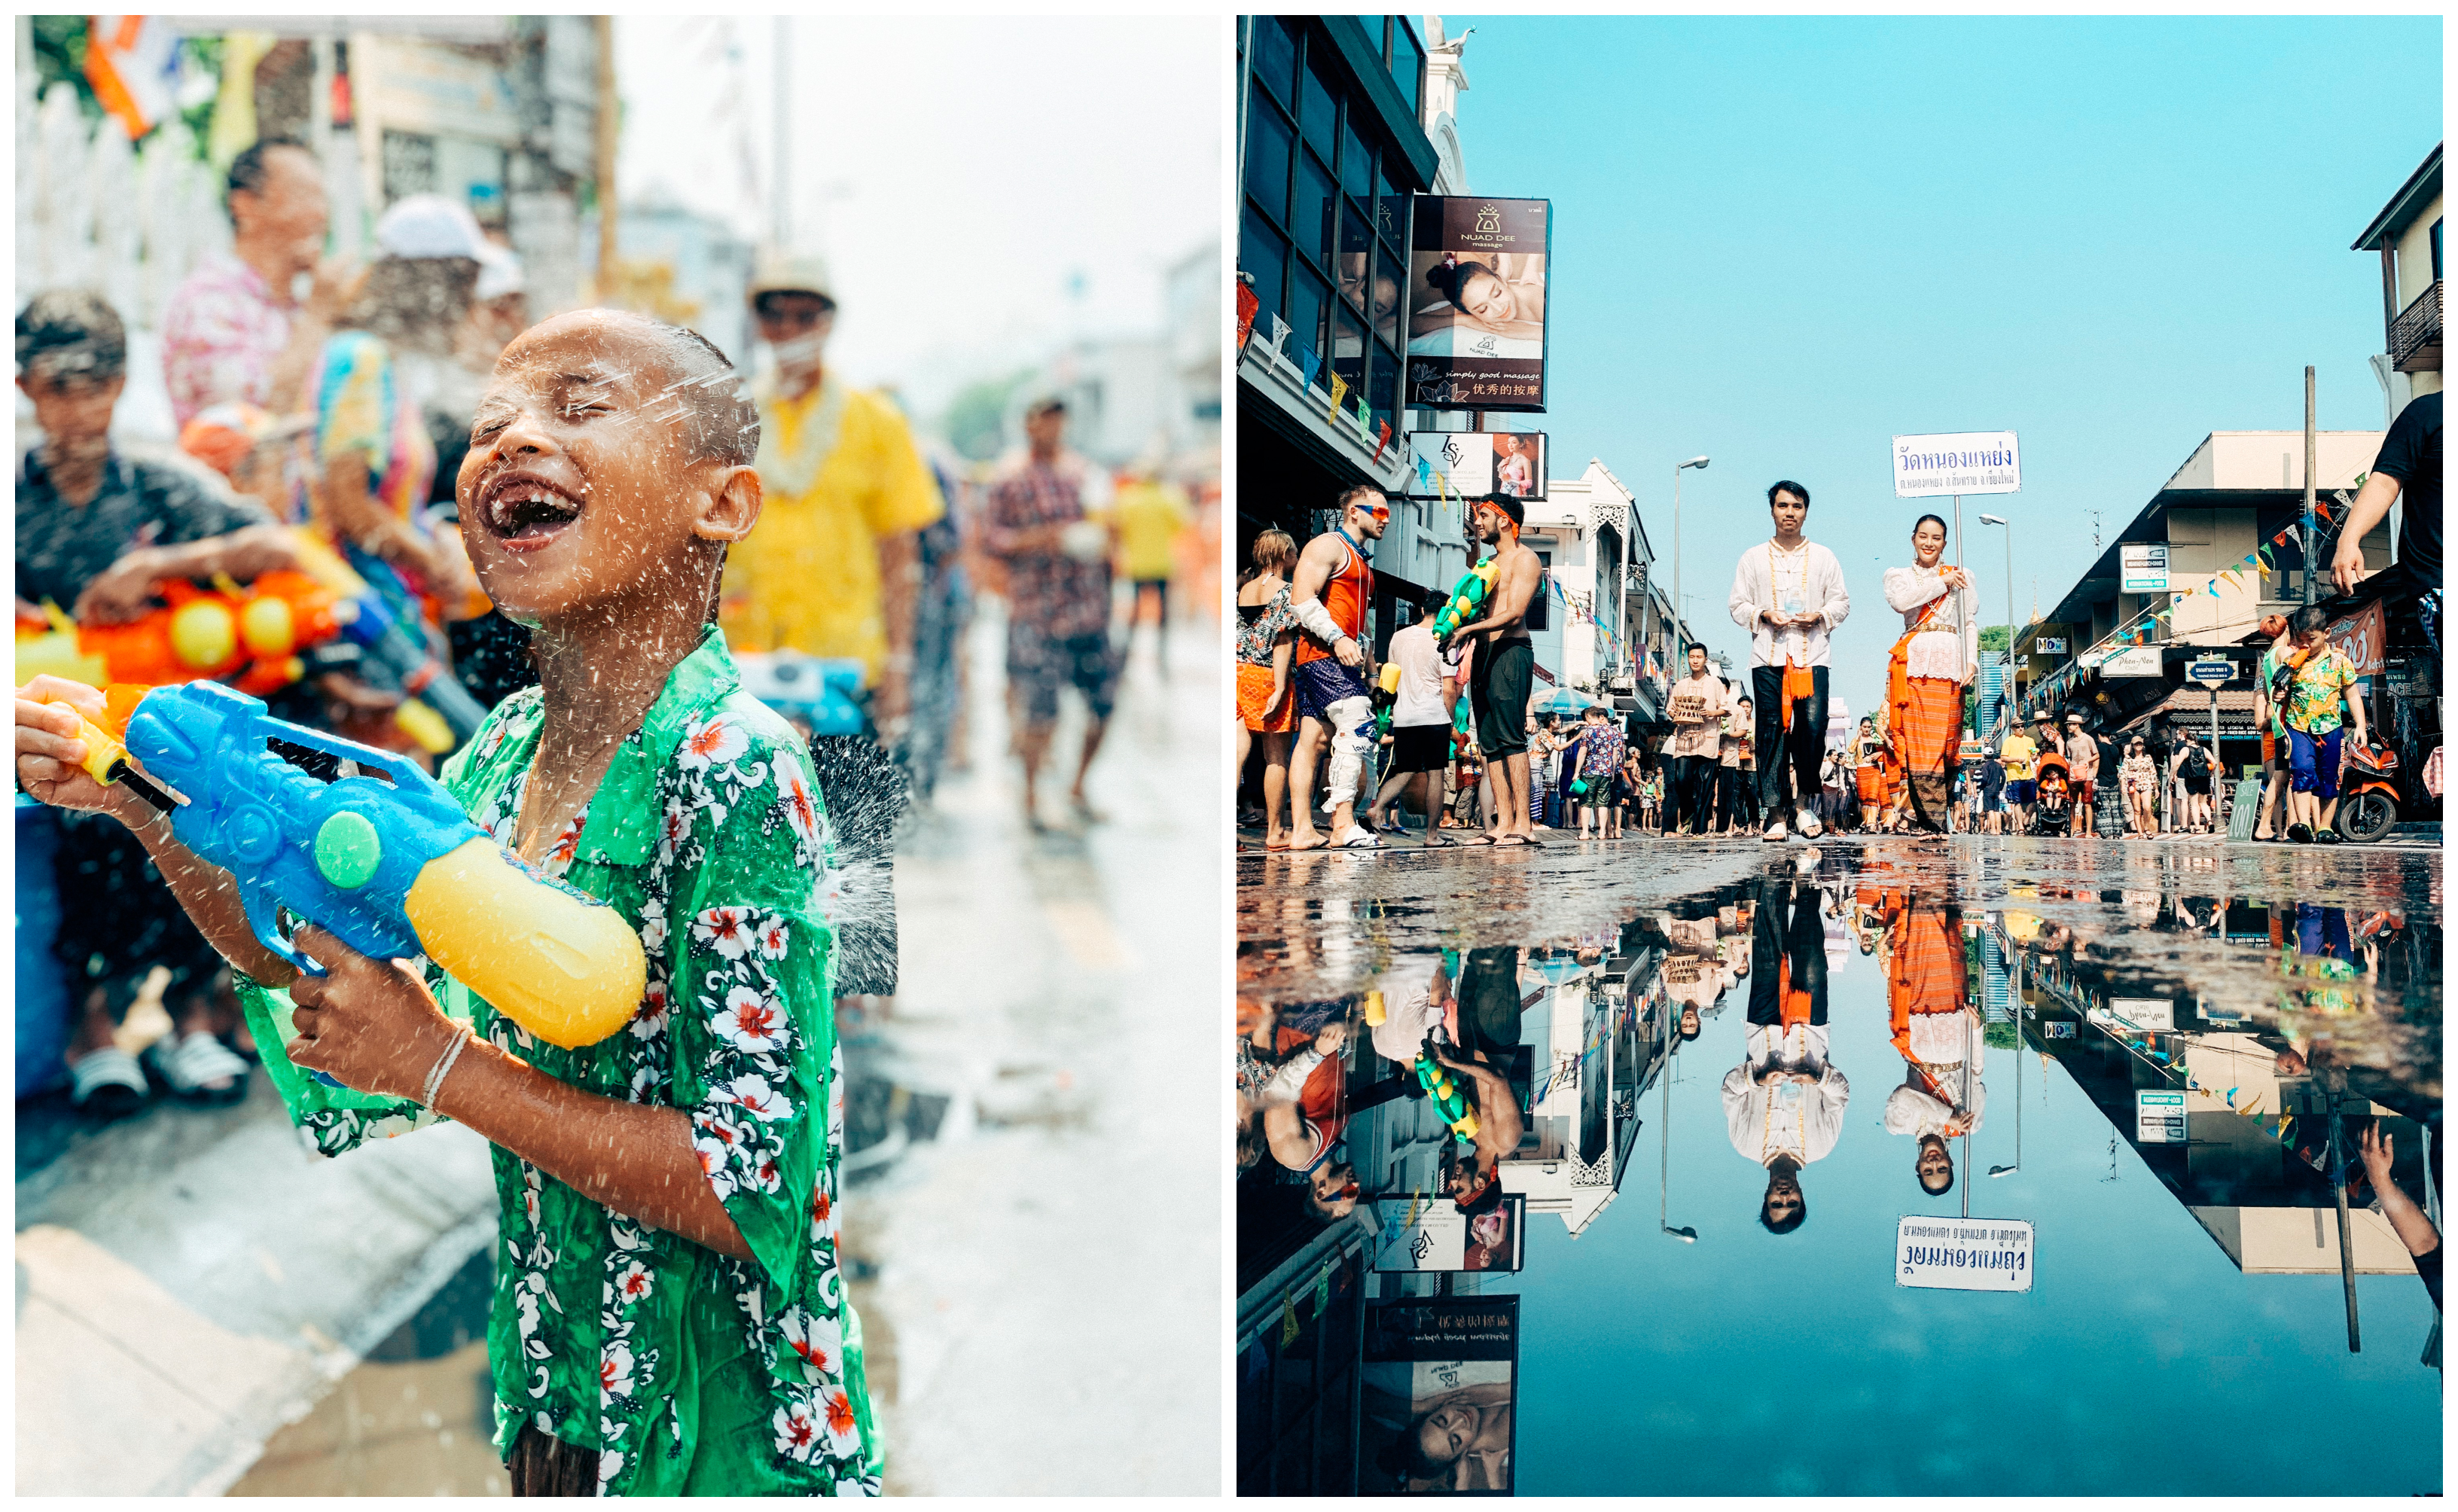 It's easy to soak in the pretty sights of Songkran captured by the iPhone 6